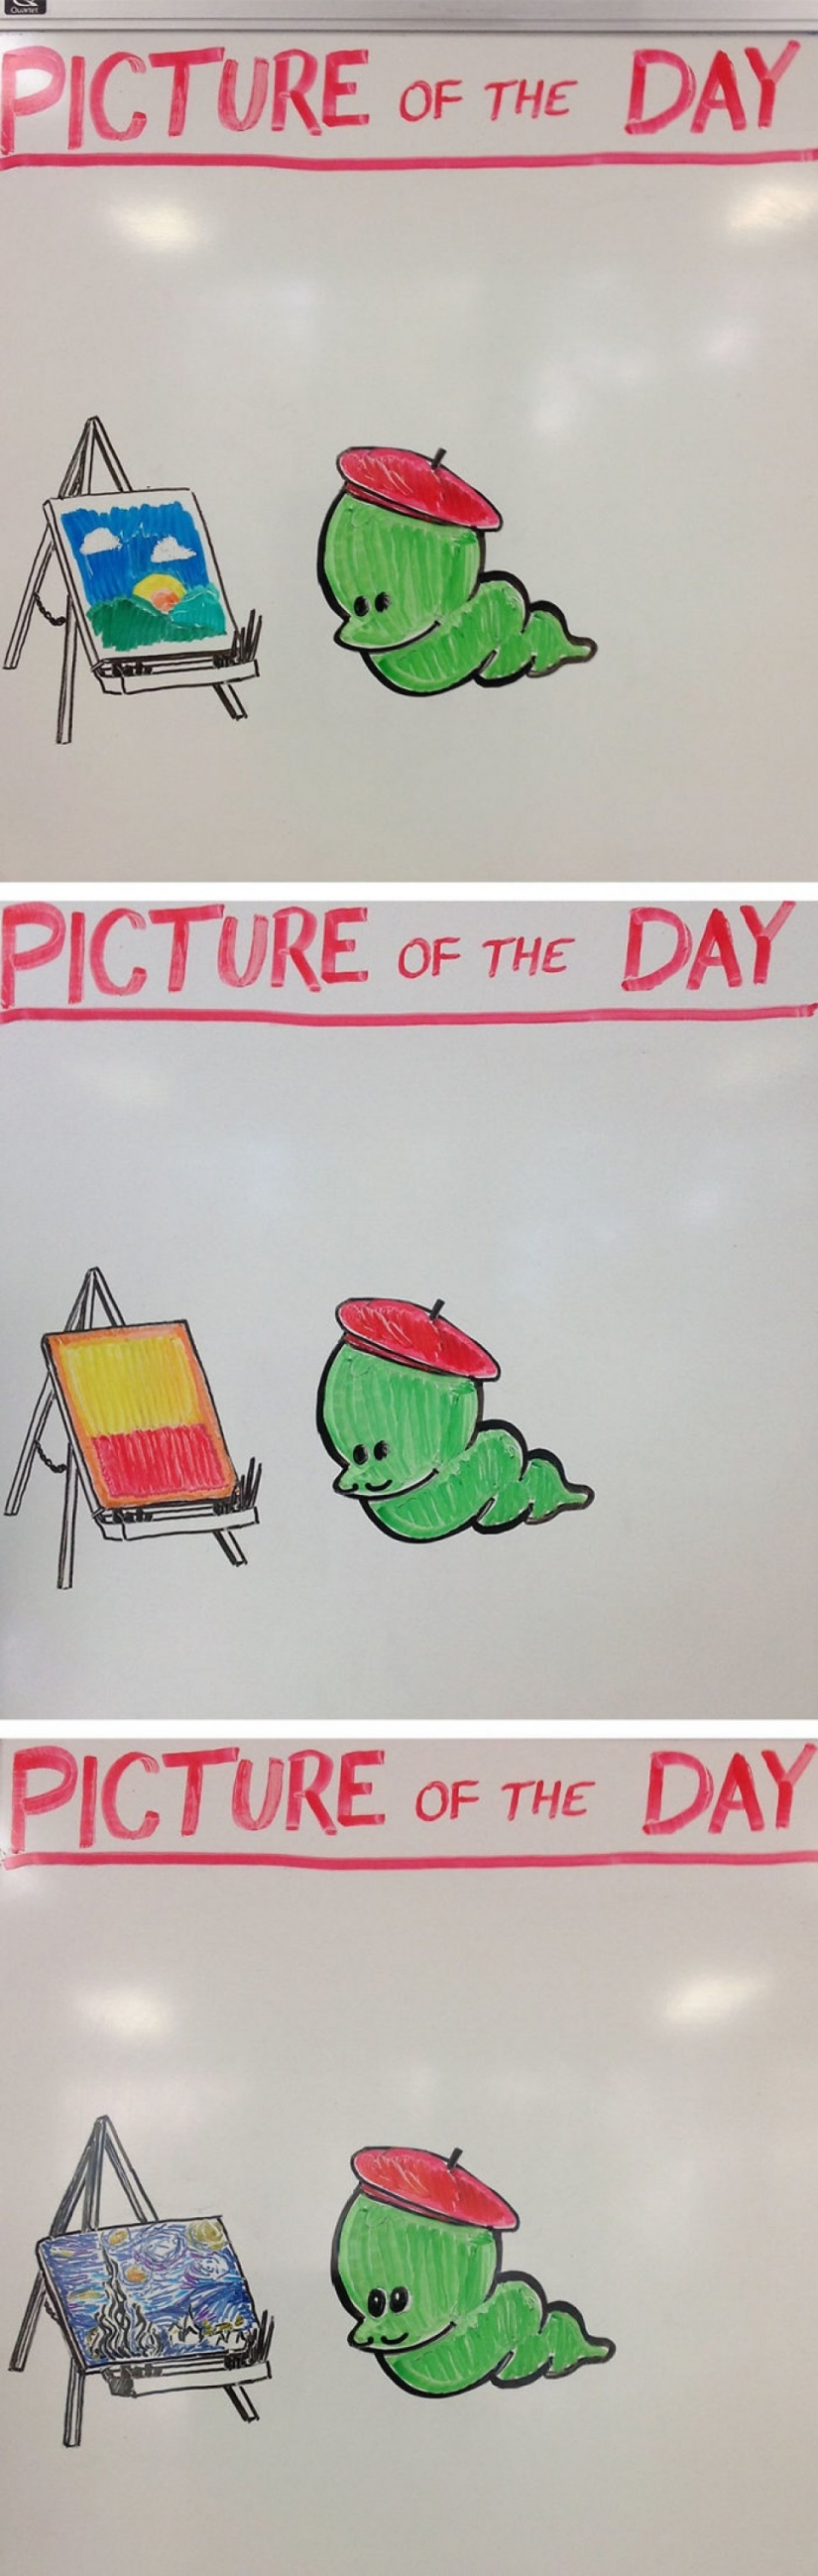 Creative history teacher every day draws pictures on the Board